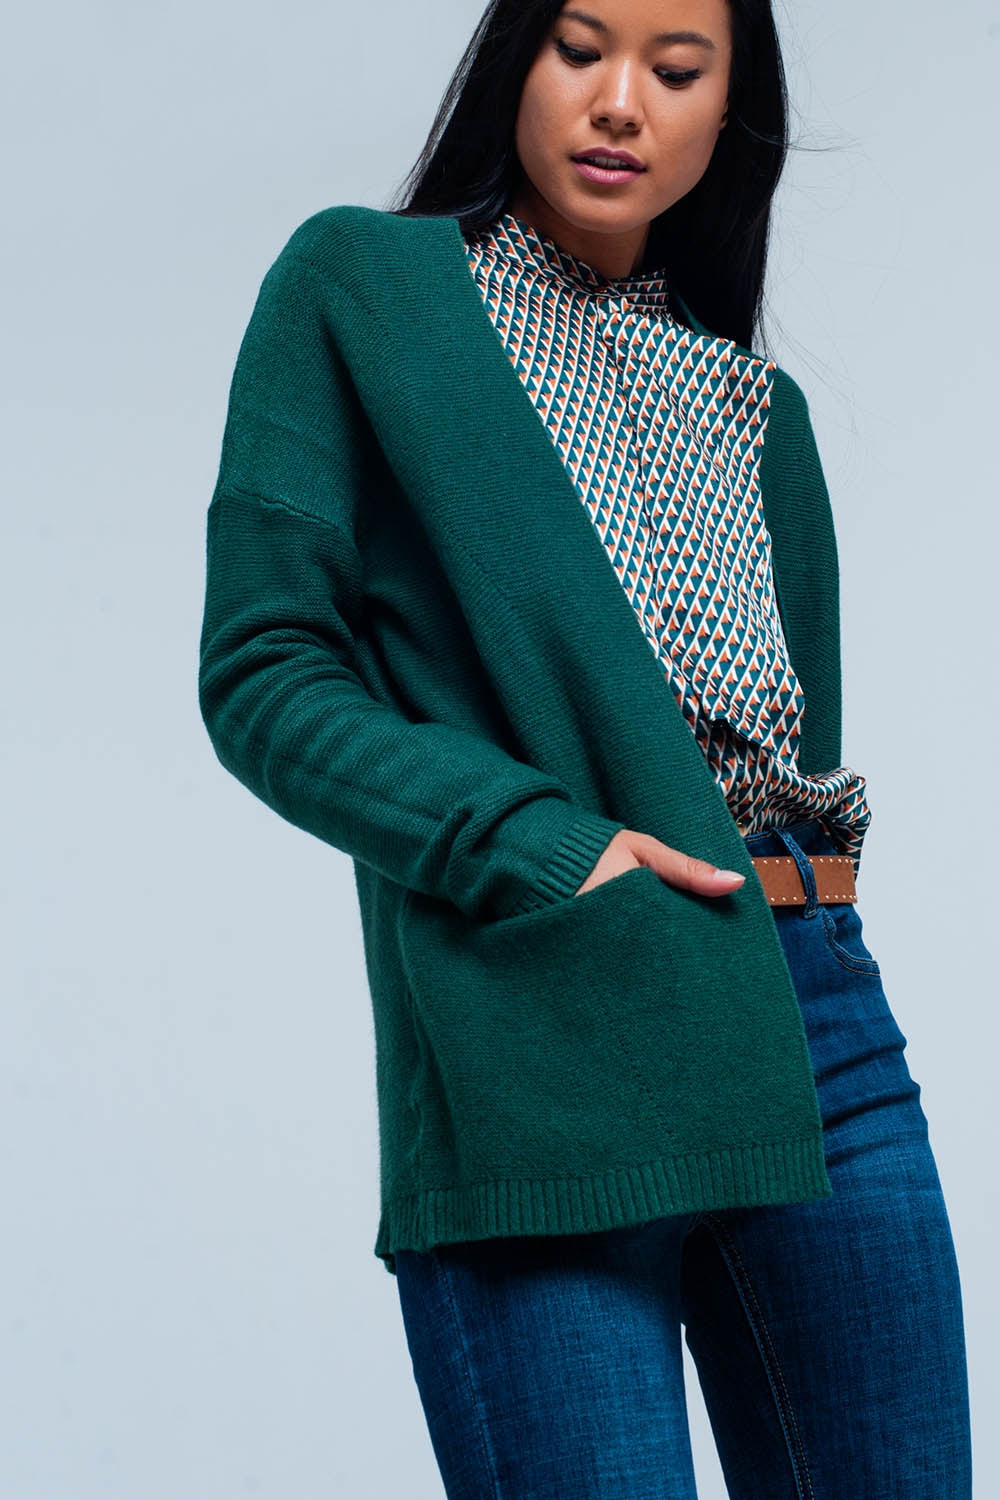 Green Cardigan With Pockets-Women - Apparel - Sweaters - Cardigans-Product Details Green cardigan with handy pockets on the side. The model of the cardigan falls very advantageous with your figure which makes it elegant and combinable with many clothes.-Keyomi-Sook